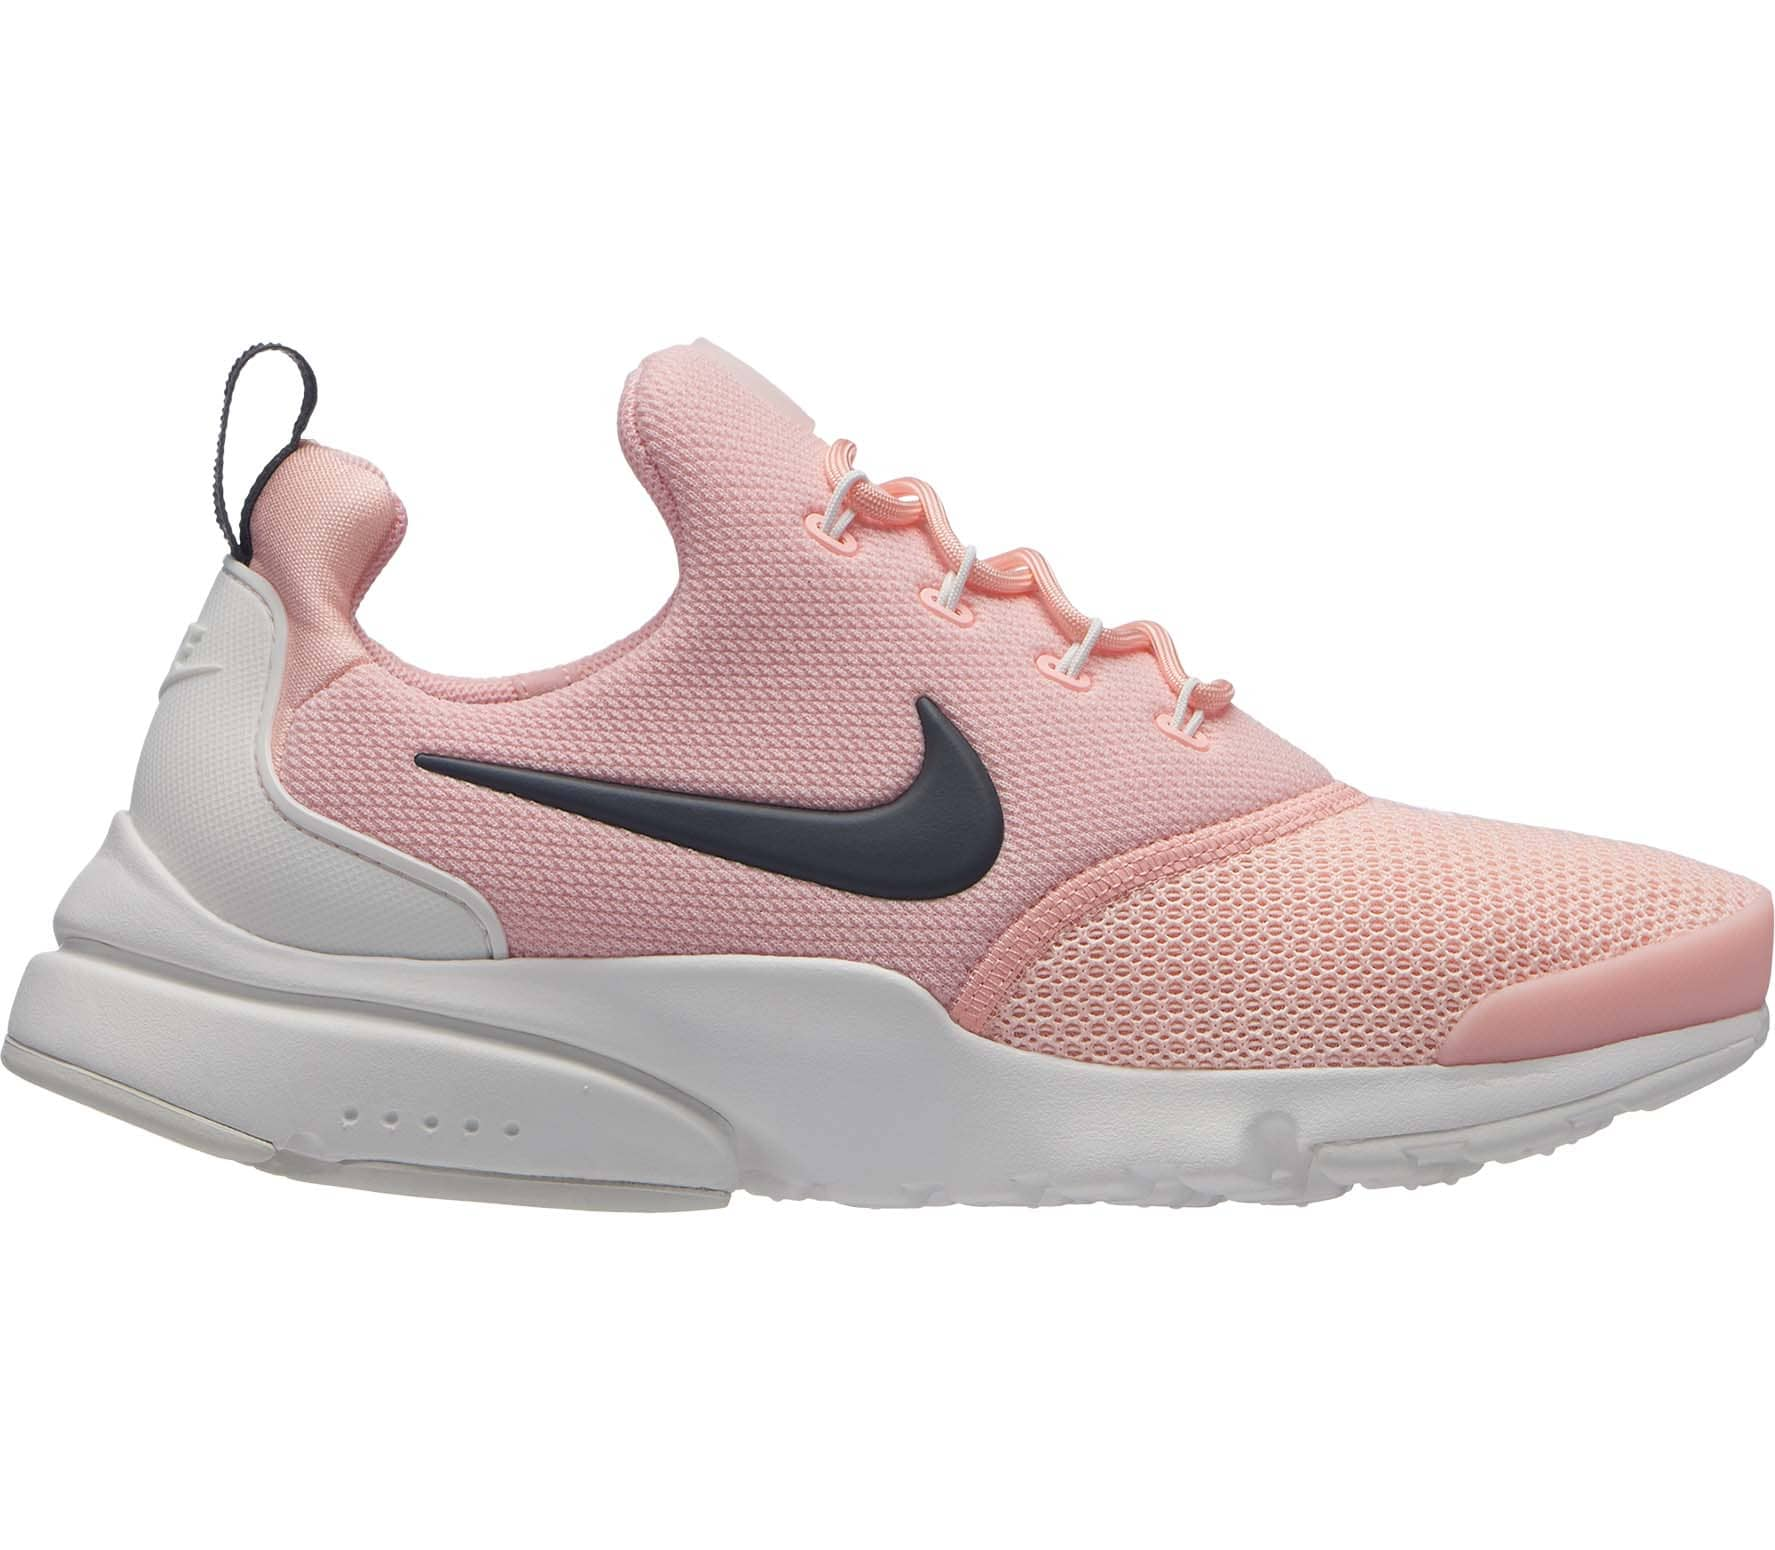 Nike Presto Fly Women red - buy it at the Keller Sports online shop